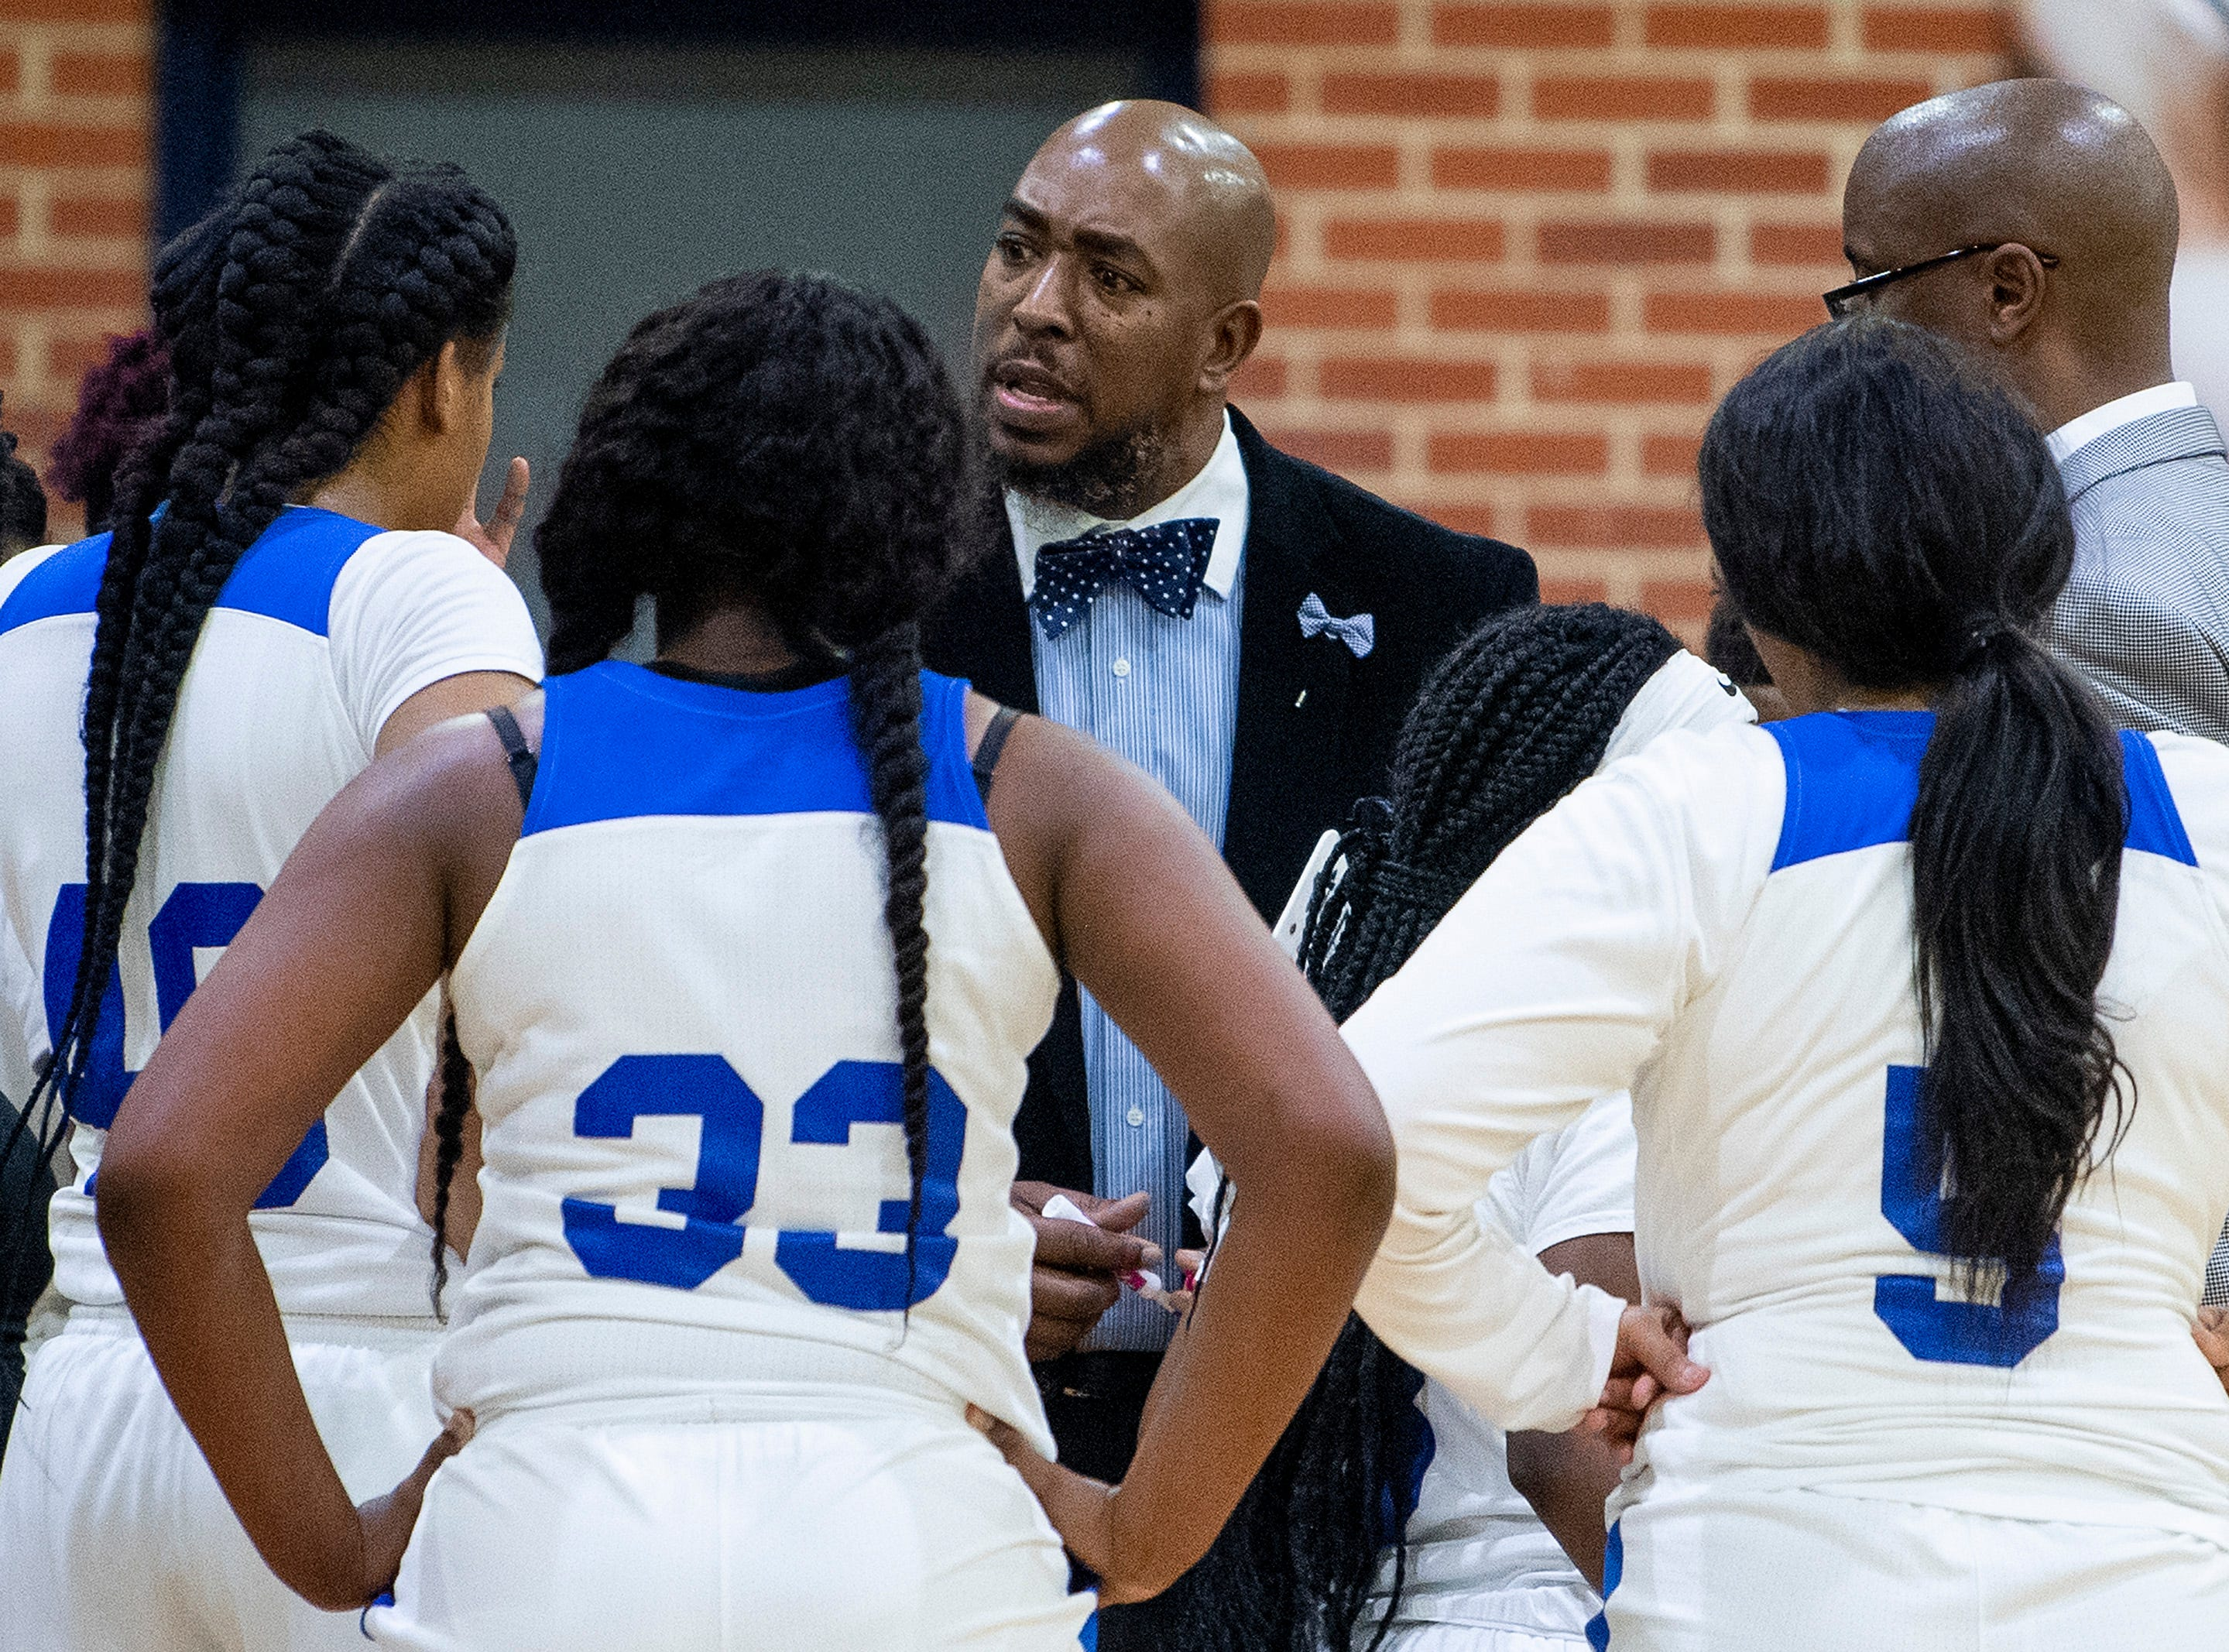 Lanier coach Dandrea Evans against Carver at the Lanier campus in Montgomery, Ala., on Friday January 11, 2019.